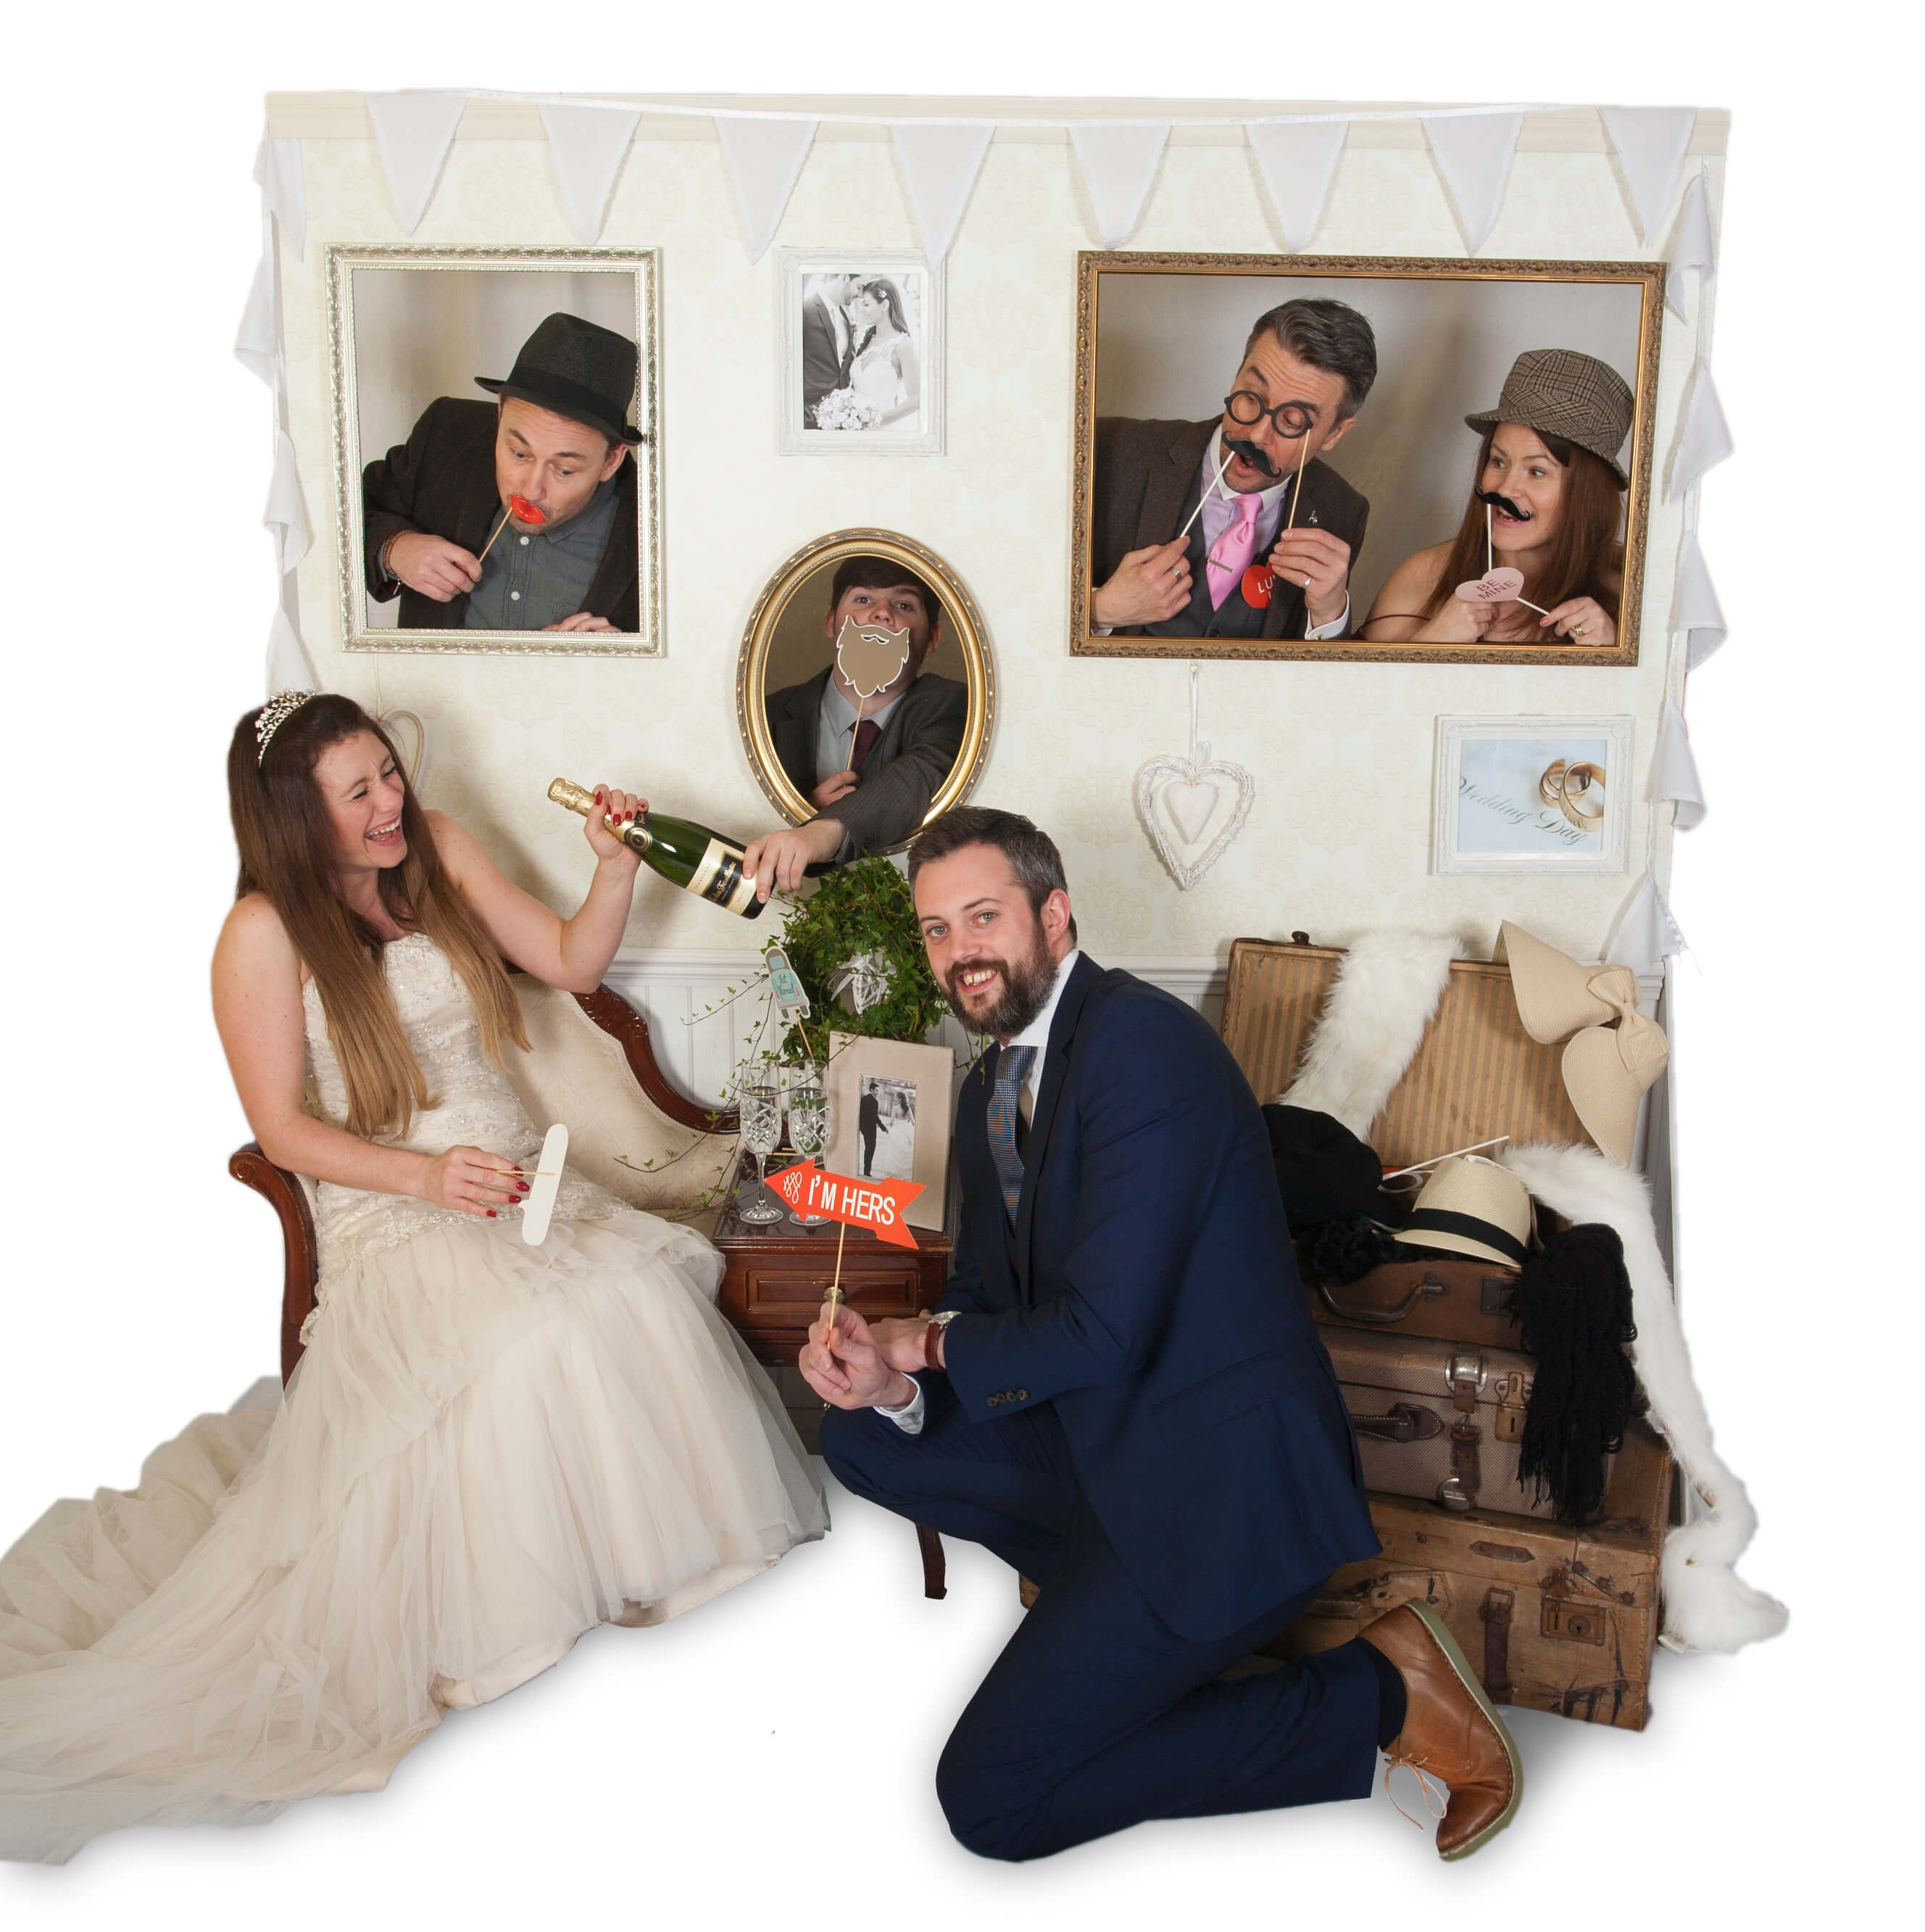 wedding photo walll